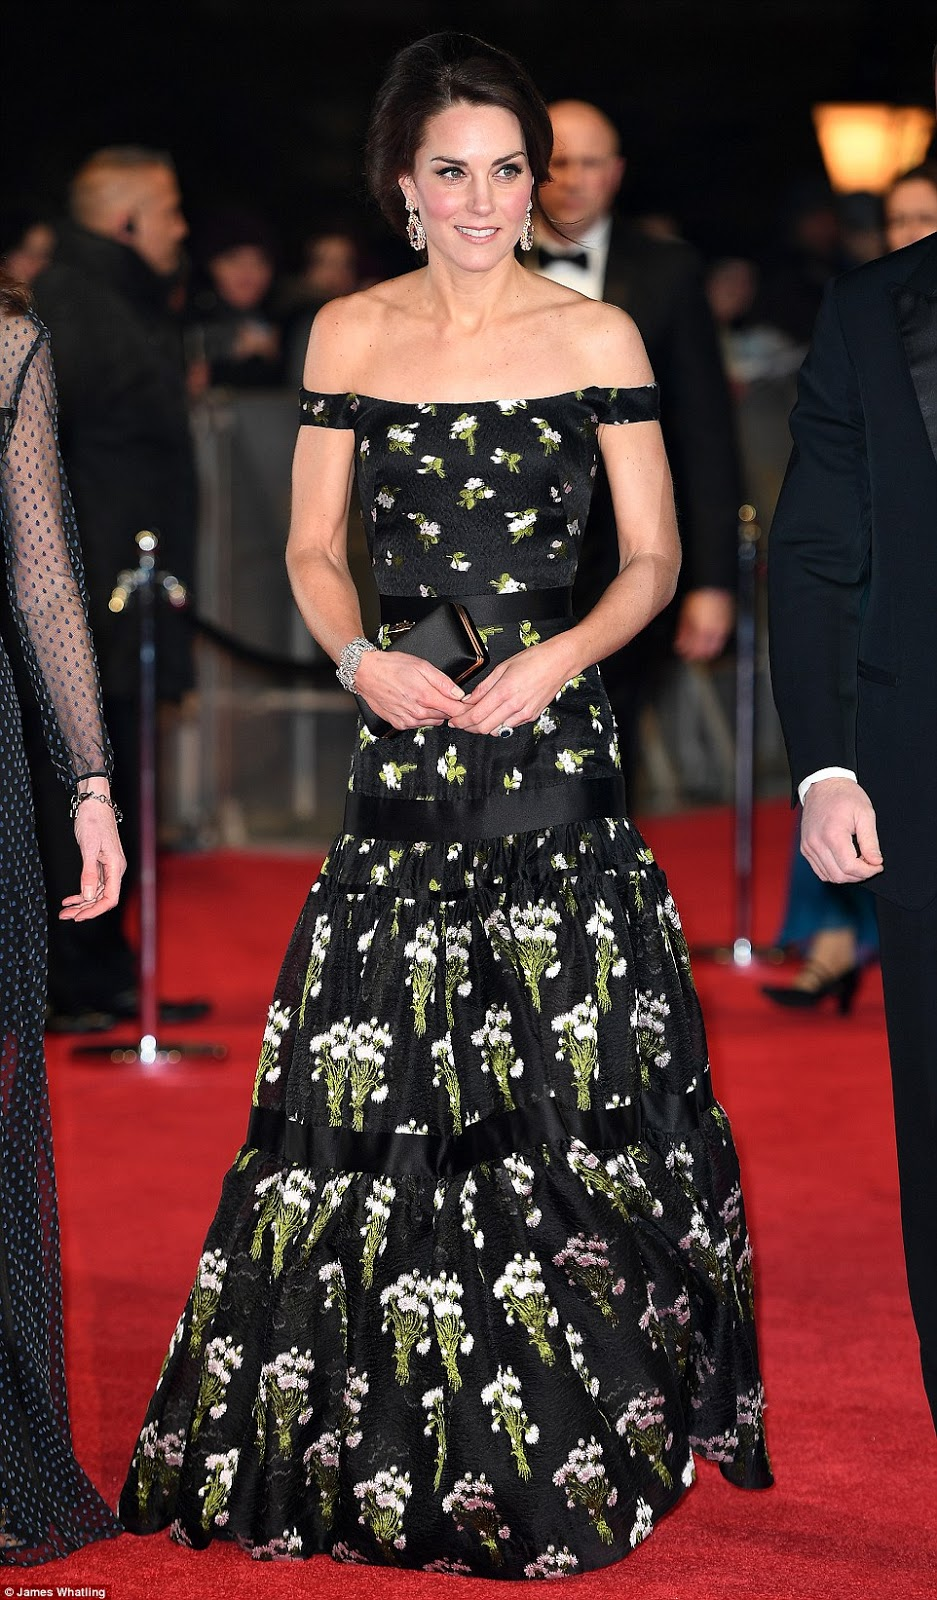 Kate Middleton arrives fashionably late to the 2017 BAFTAs ...